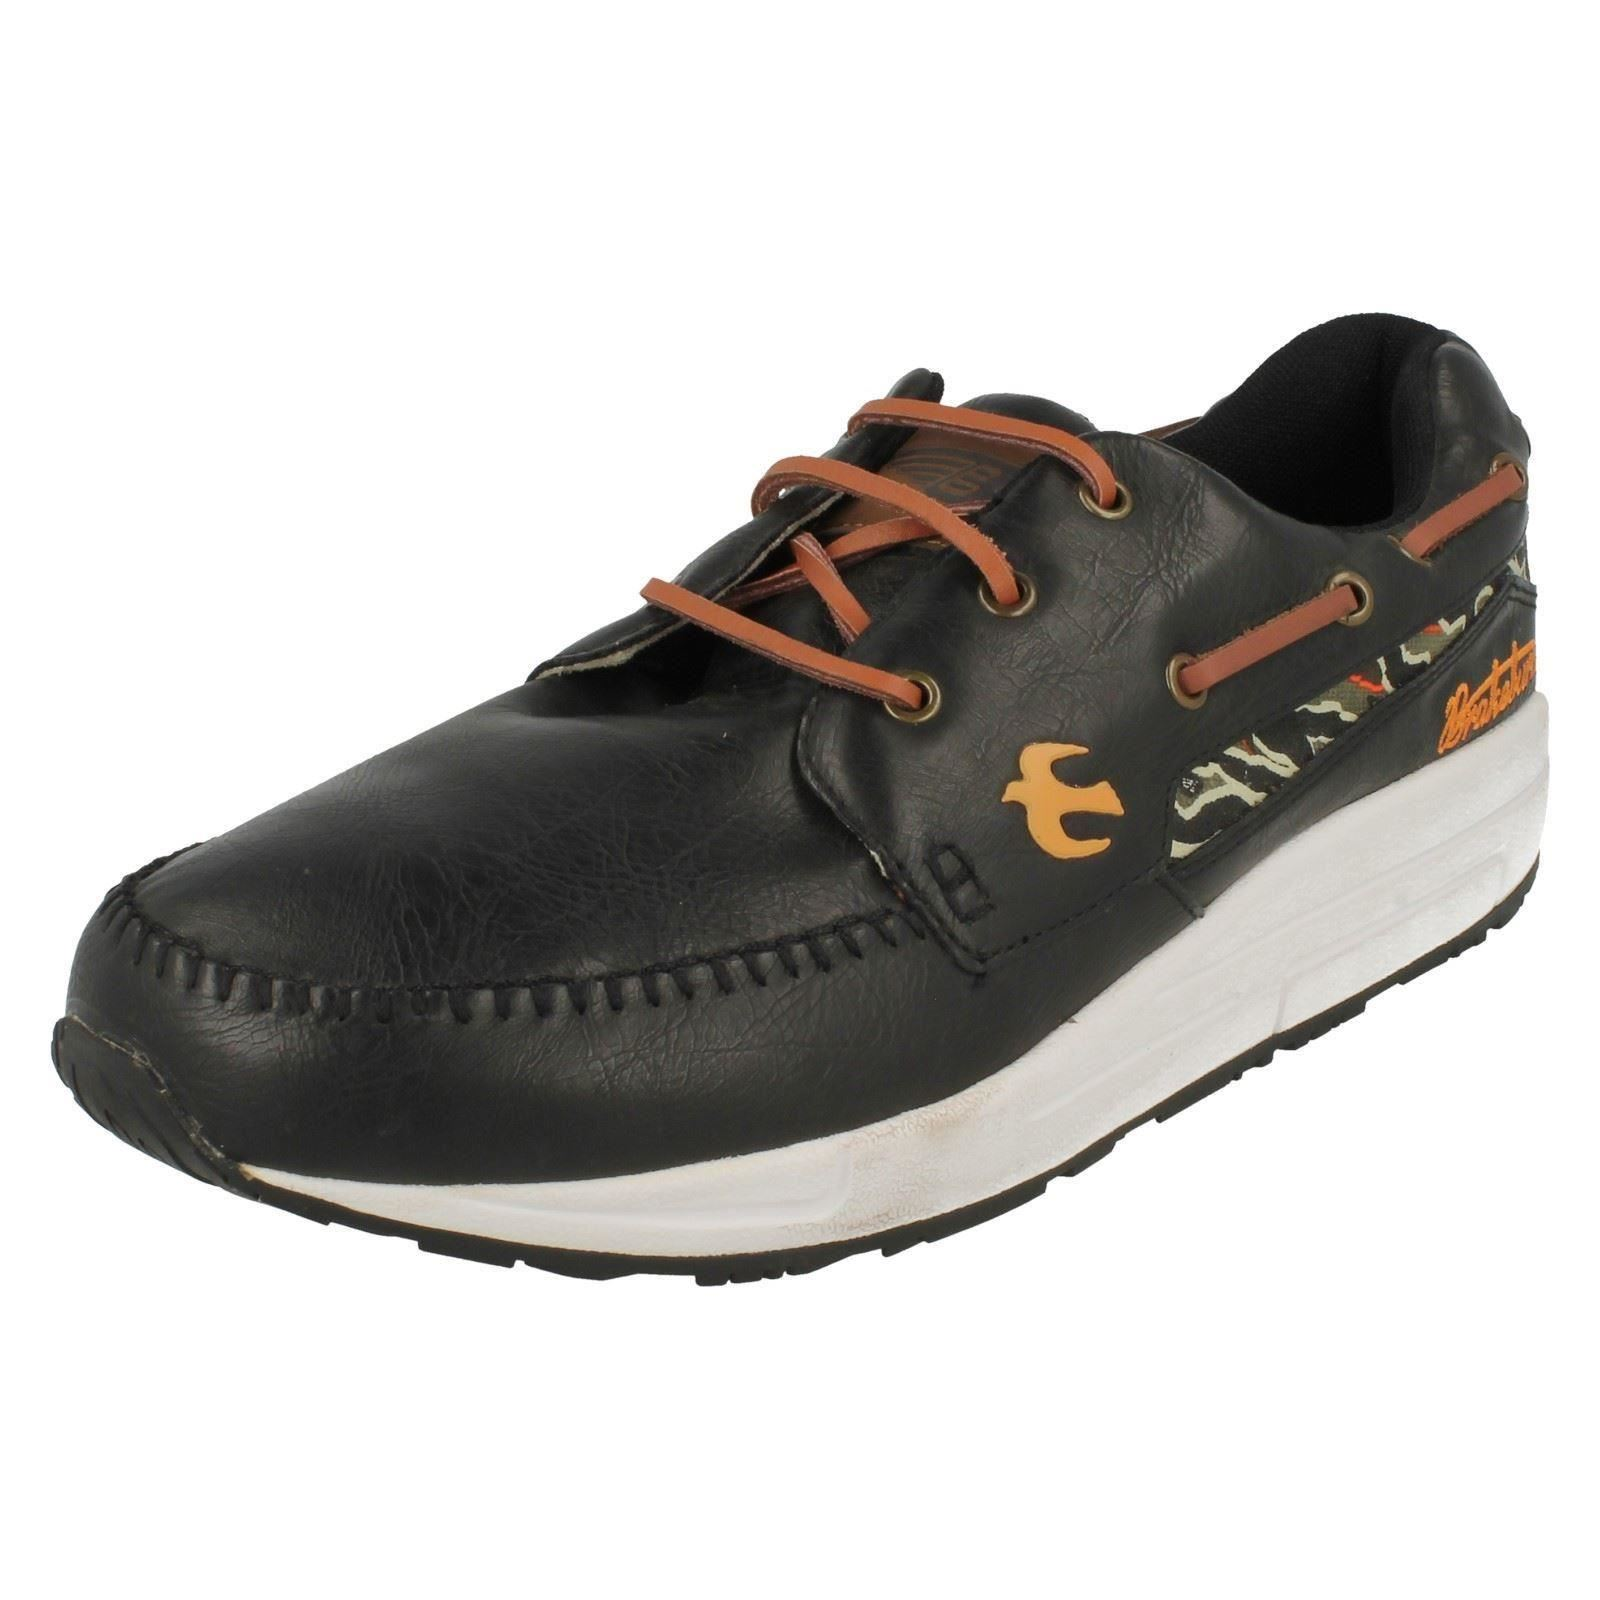 Mens Brakeburn Casual Lace Up Shoes, Five Spoke